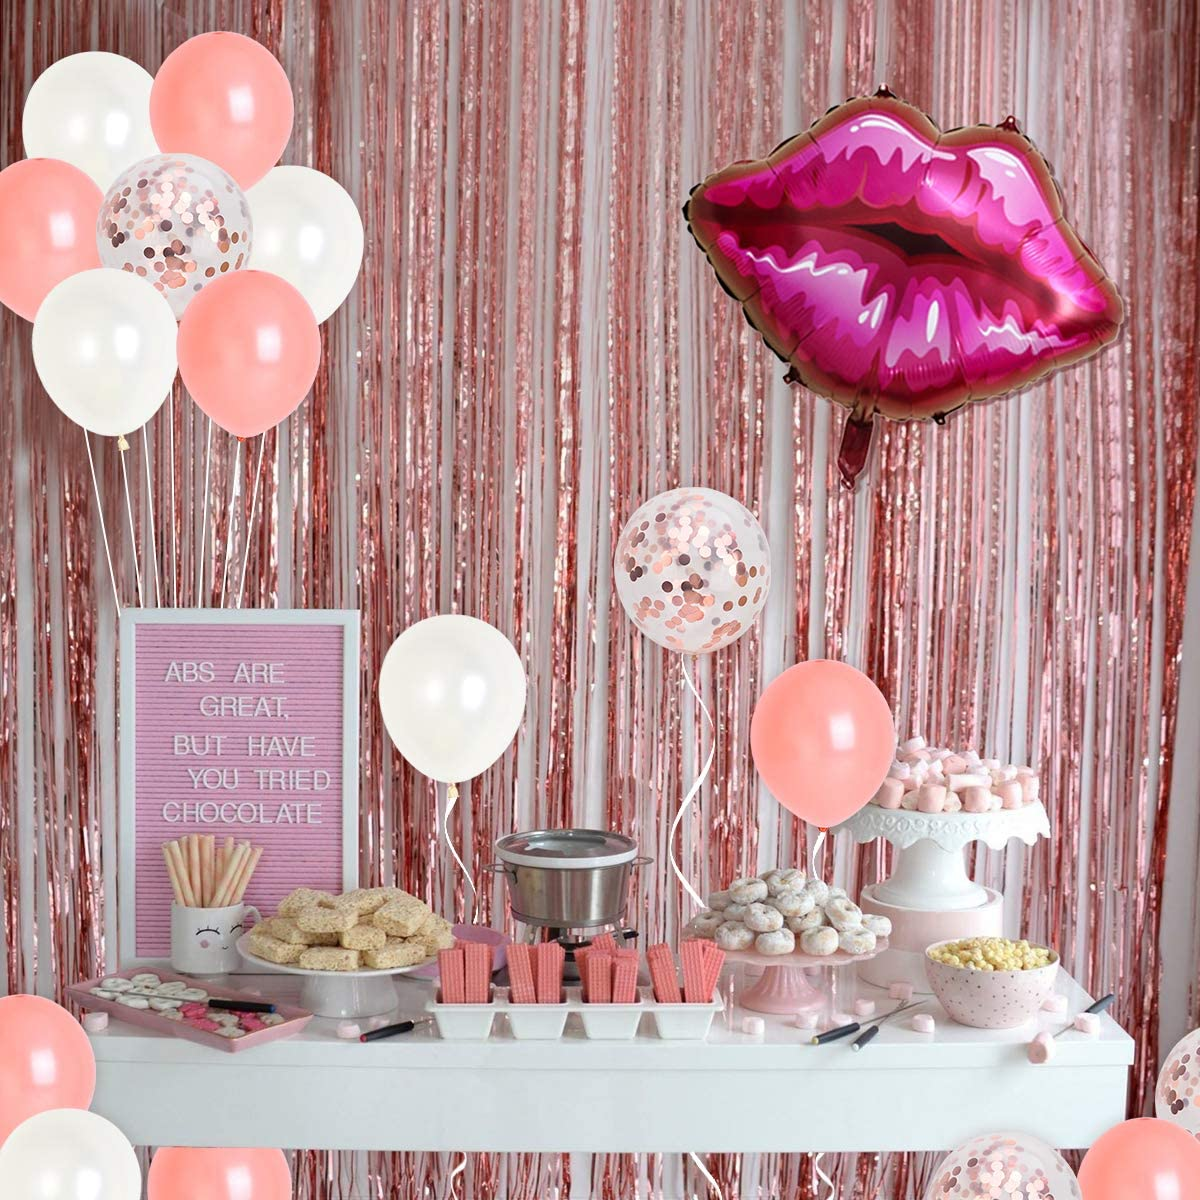 22nd Birthday Party Decorations Rose Gold Feeling 22 Birthday Decorations for Her Women with Im Feeling 22 Sash Cake Topper Fringe Curtains Feelin 22 Balloons